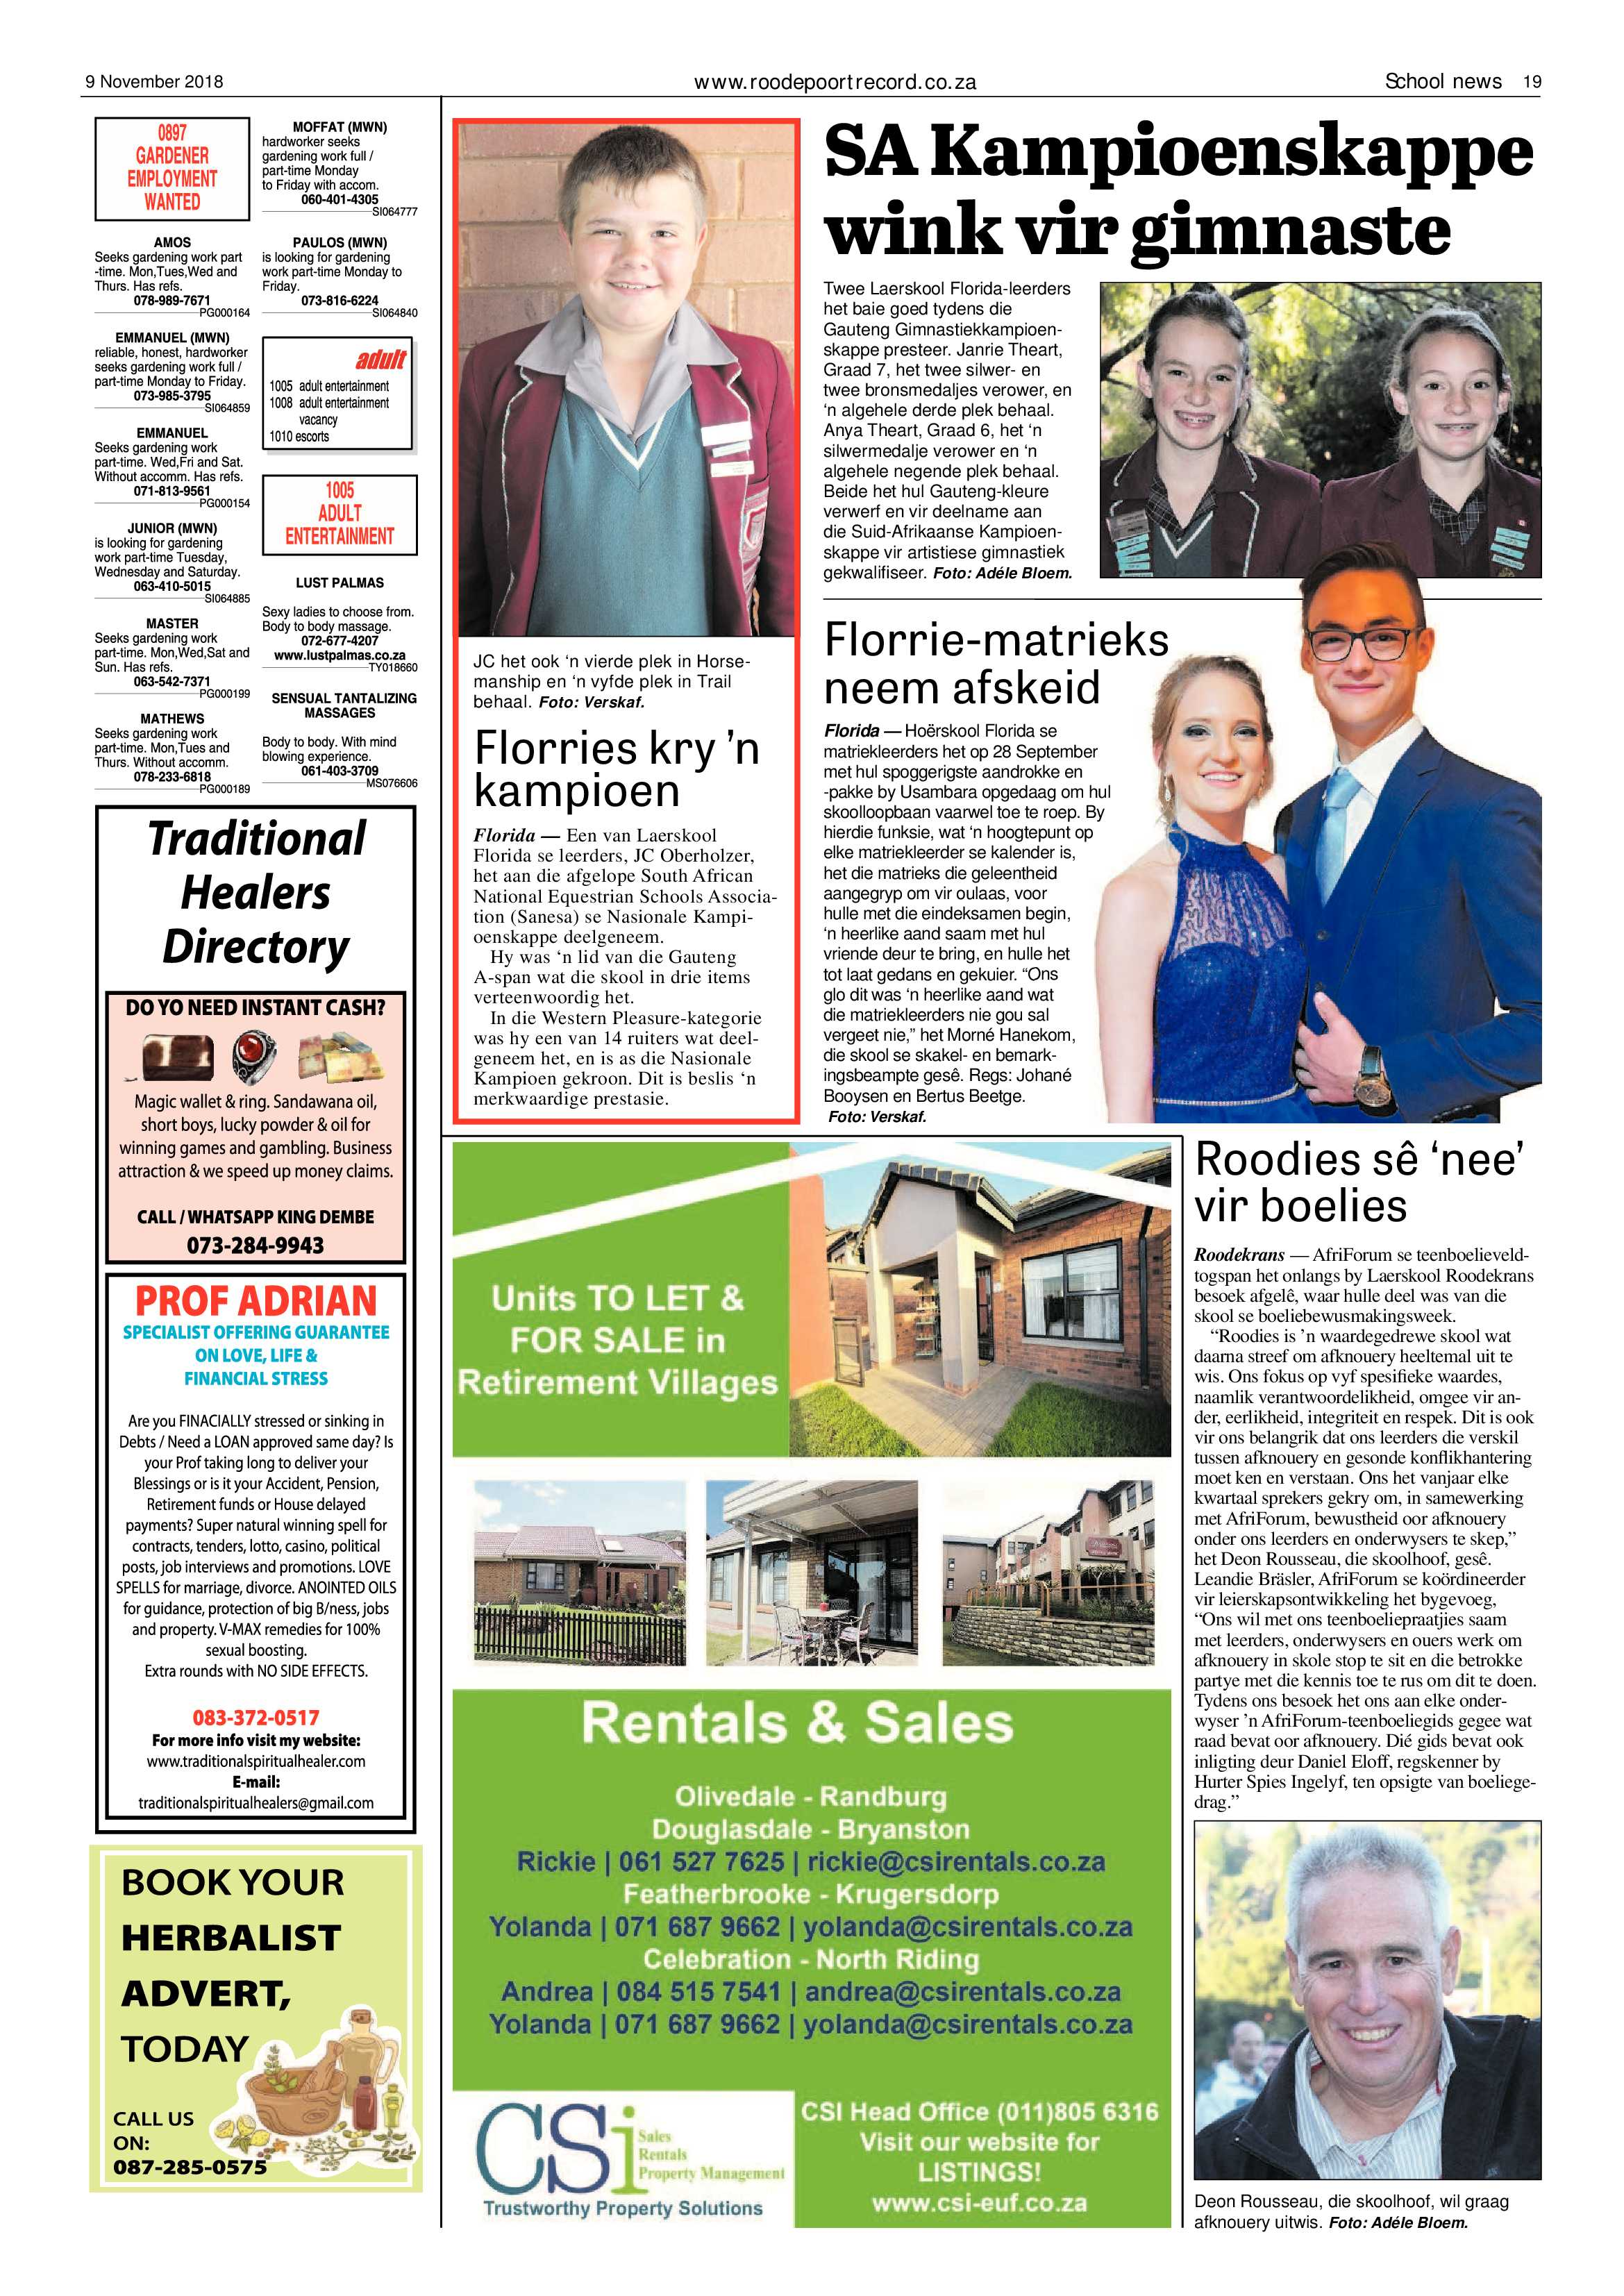 roodepoort-record-9-november-2018-epapers-page-19